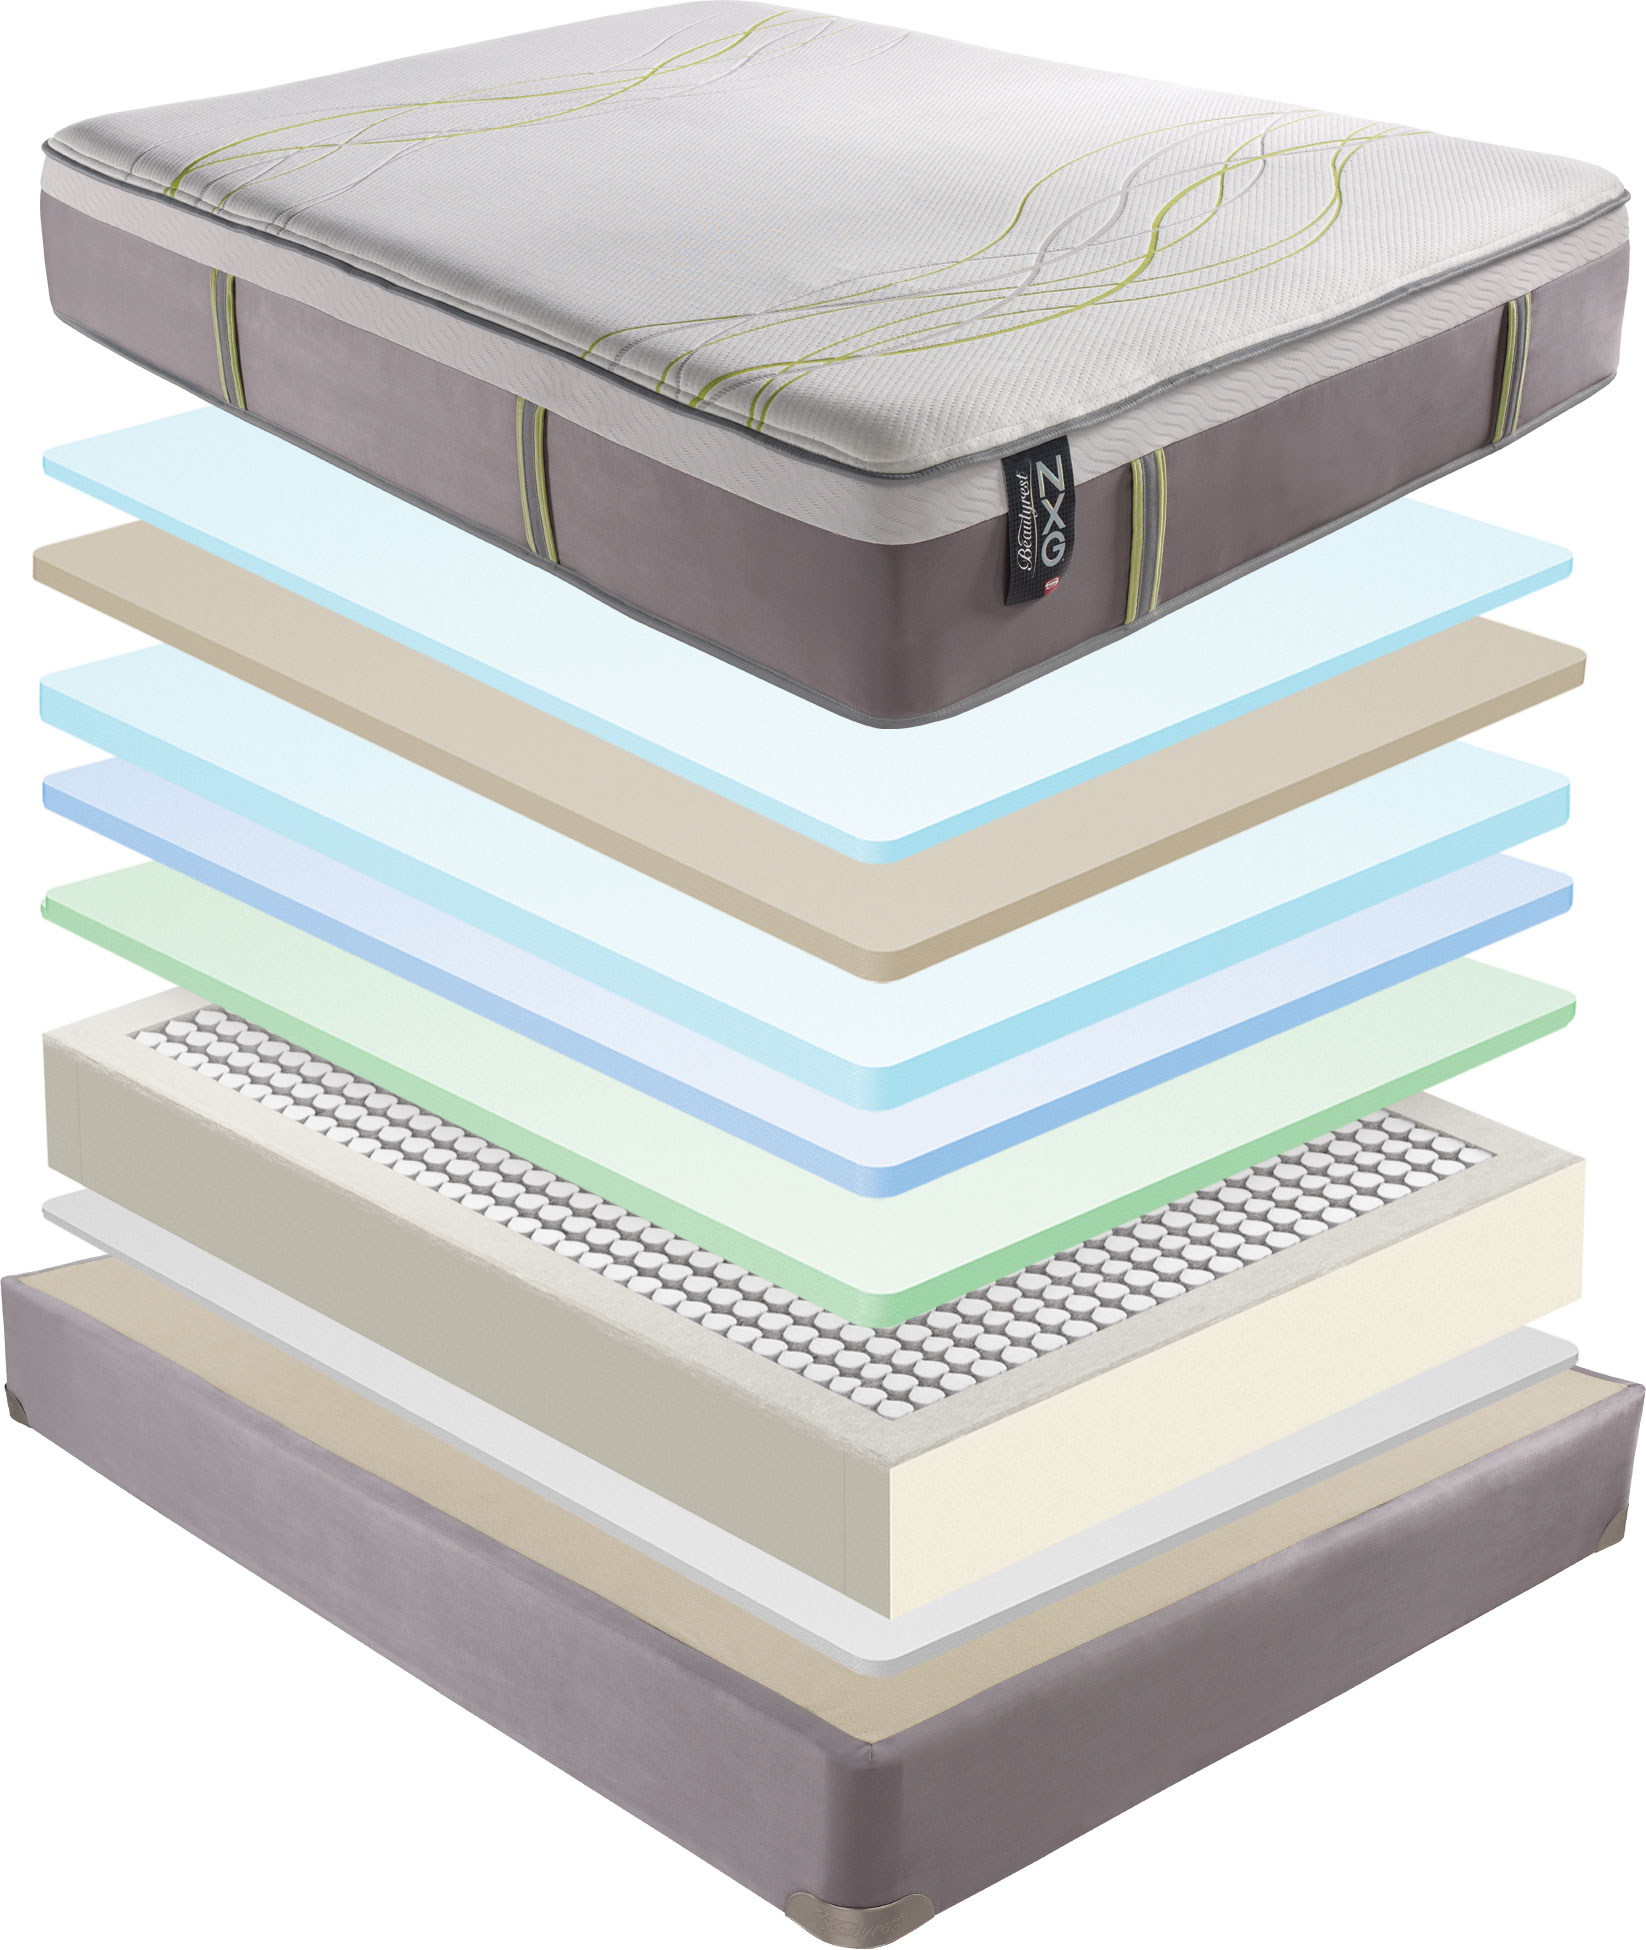 Simmons Beautyrest NXG 400 Firm Pillow Top Mattress